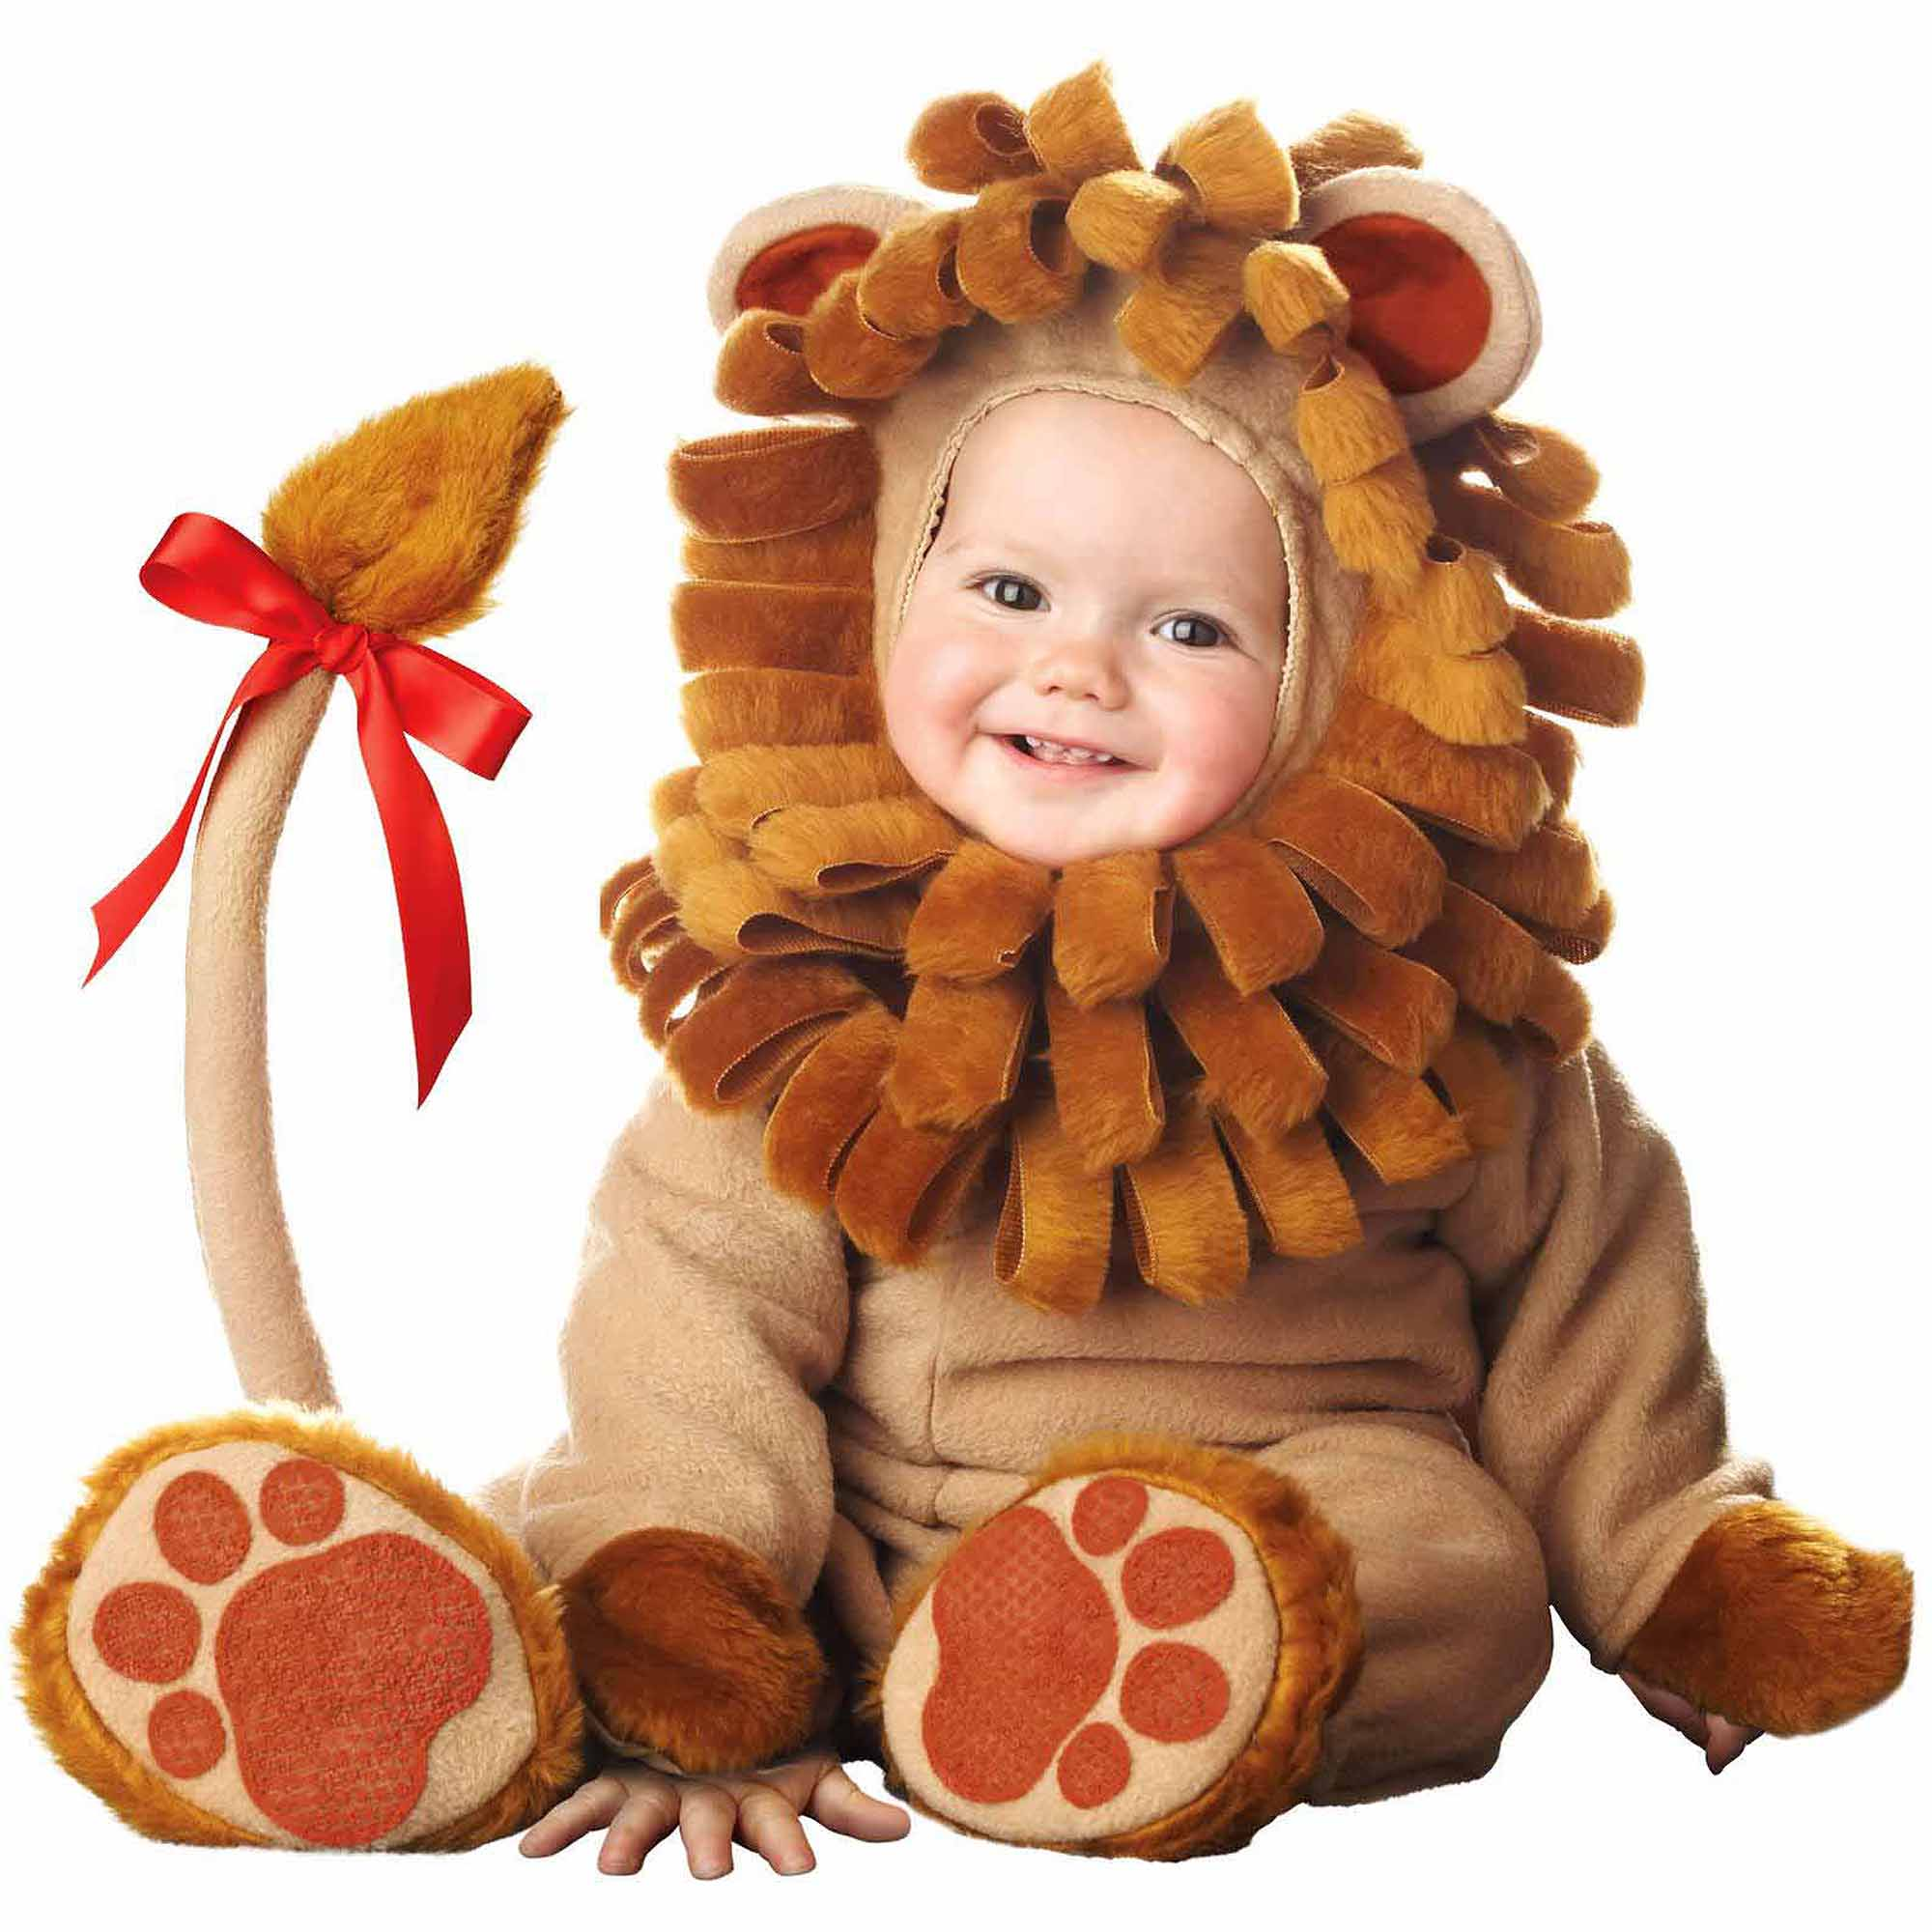 LIL LION LIL CHARACTERS 6-12MO